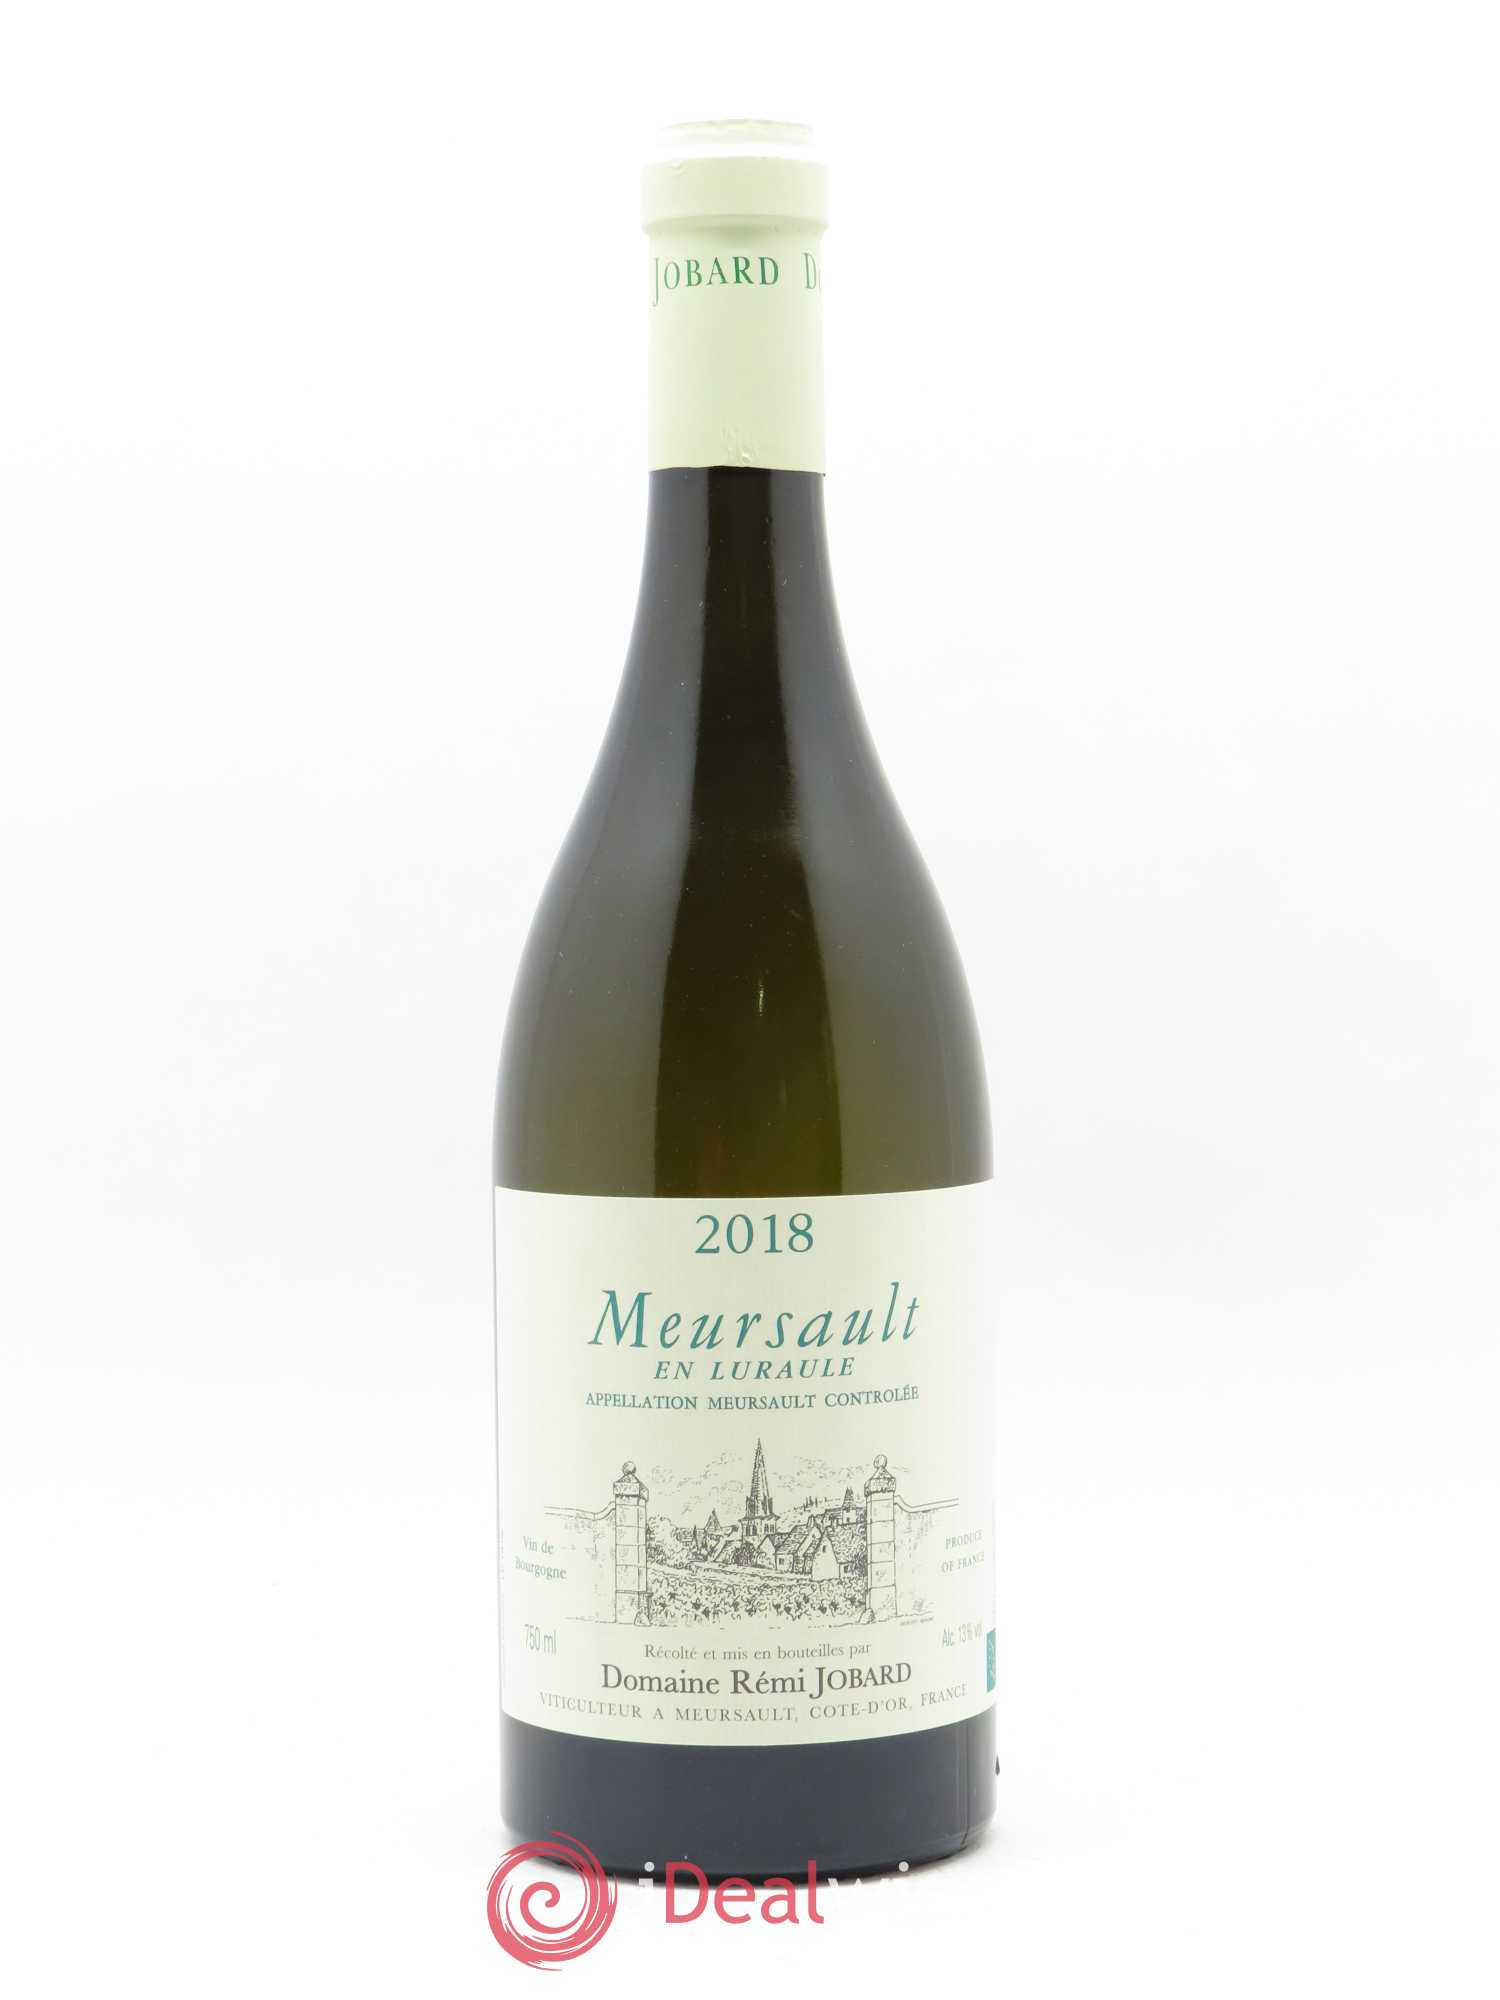 Meursault En Luraule Rémi Jobard (Domaine)  2018 - Lot of 1 Bottle